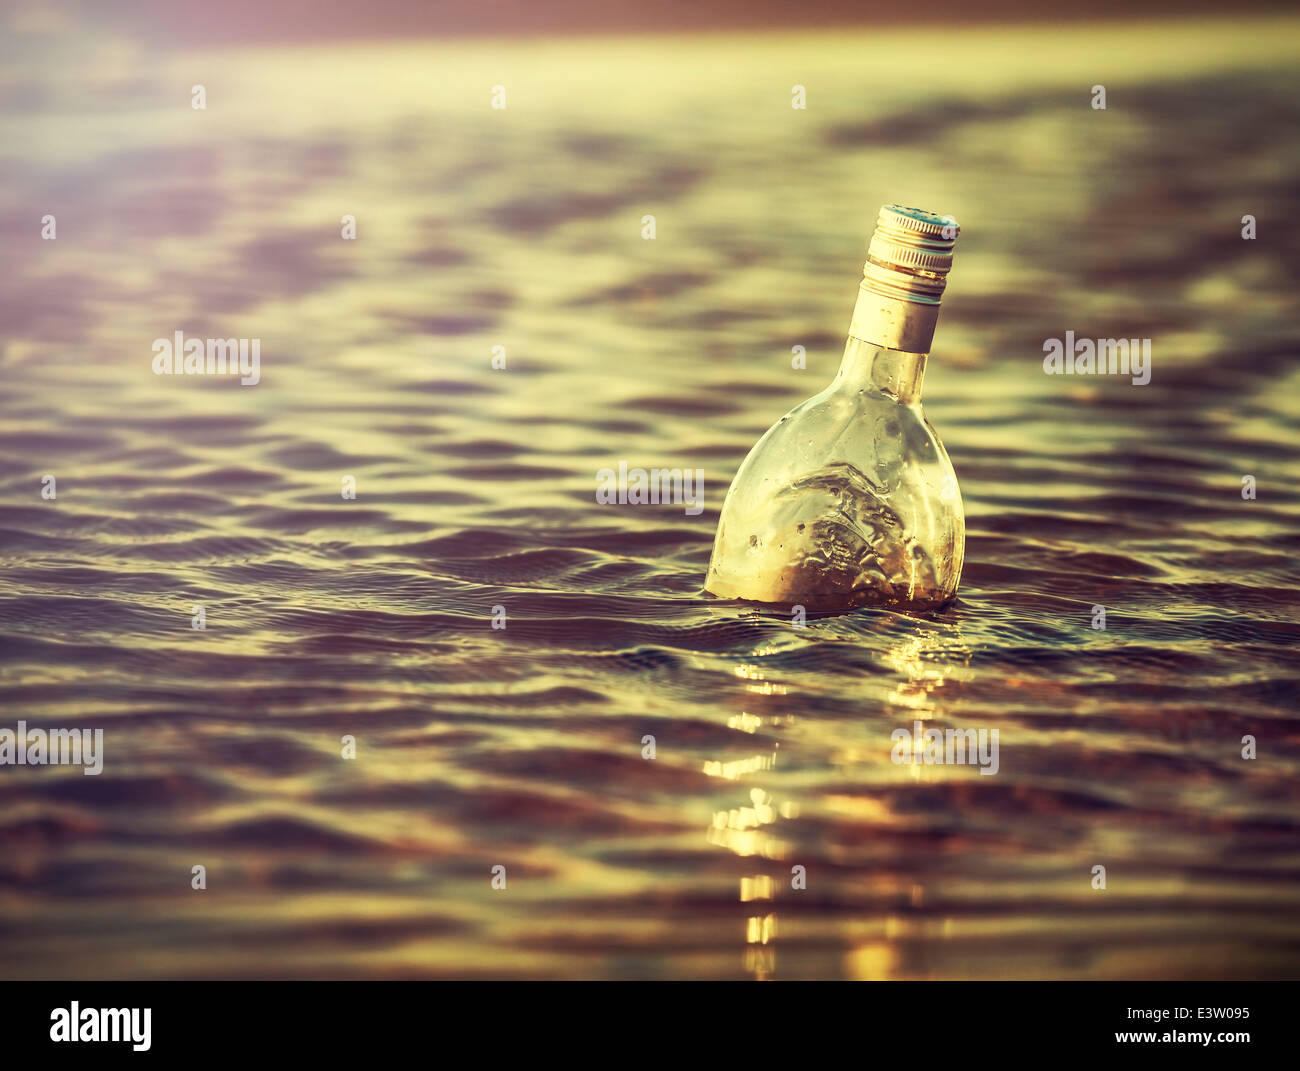 Bottle in water at sunset, retro instagram vintage effect. - Stock Image